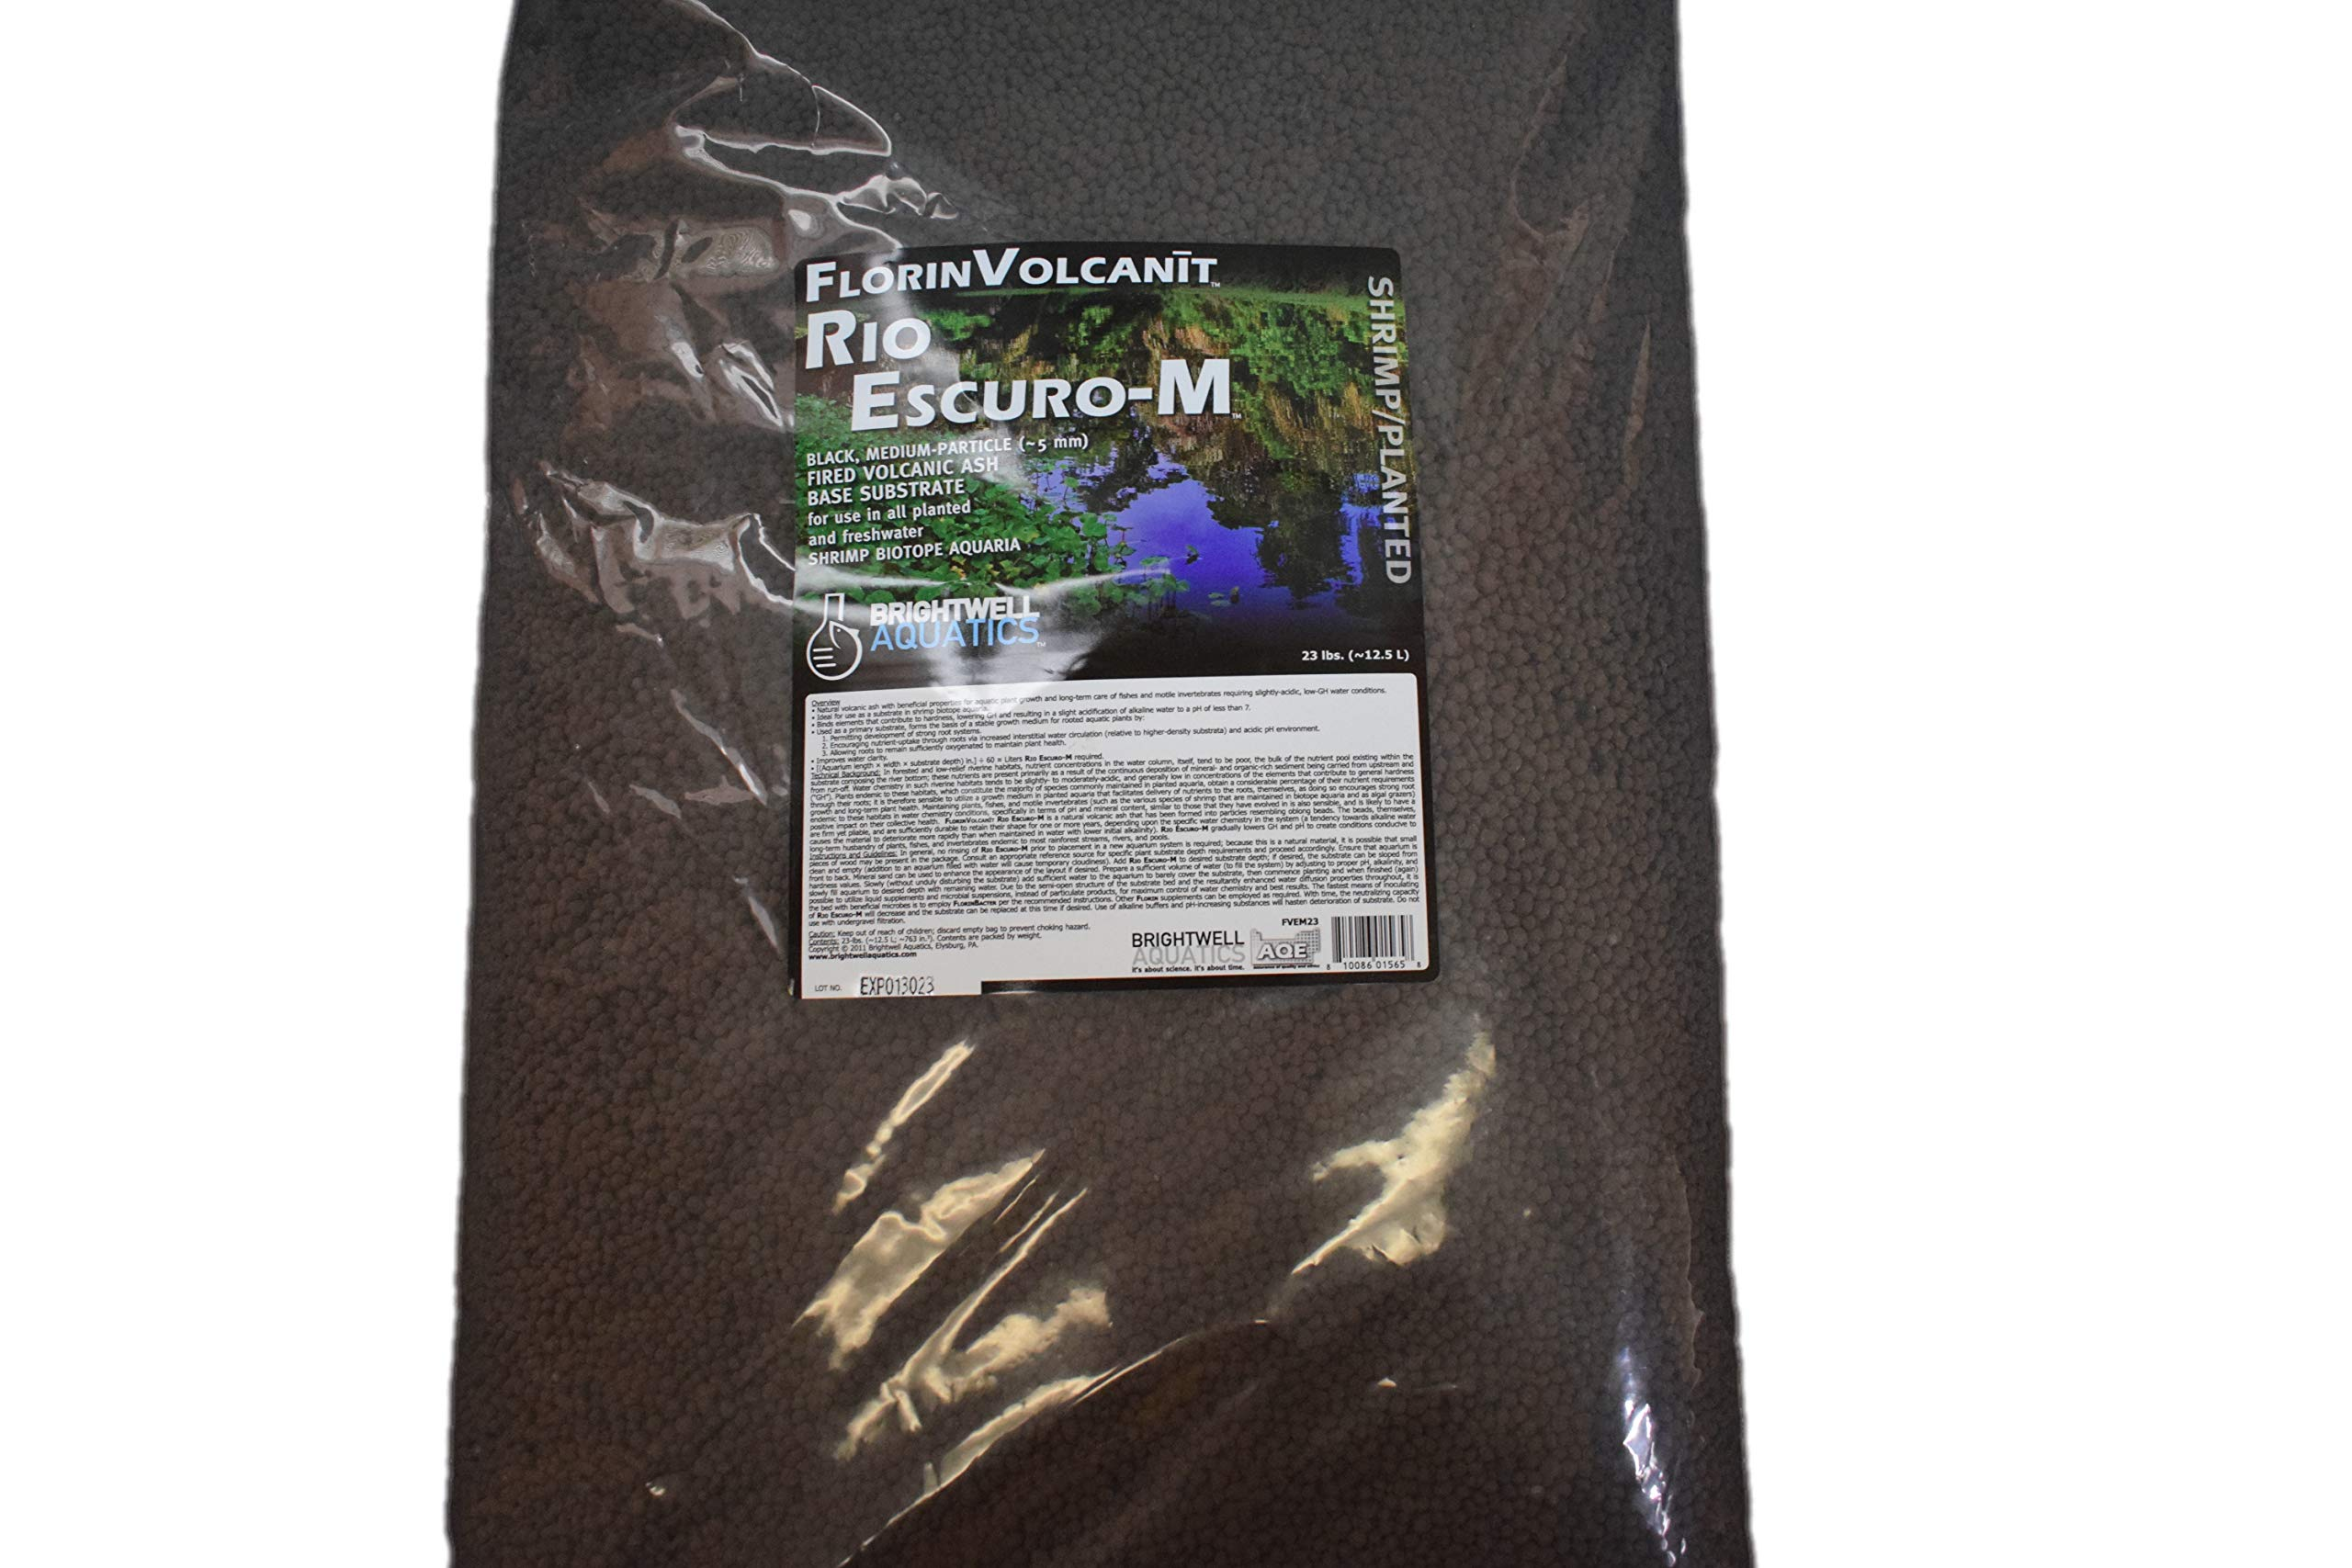 Brightwell Aquatics FlorinVolcanit Rio Escuro-M, Black, Medium Particle (5mm) Fired Volcanic Ash Base Substrate, 23Lbs